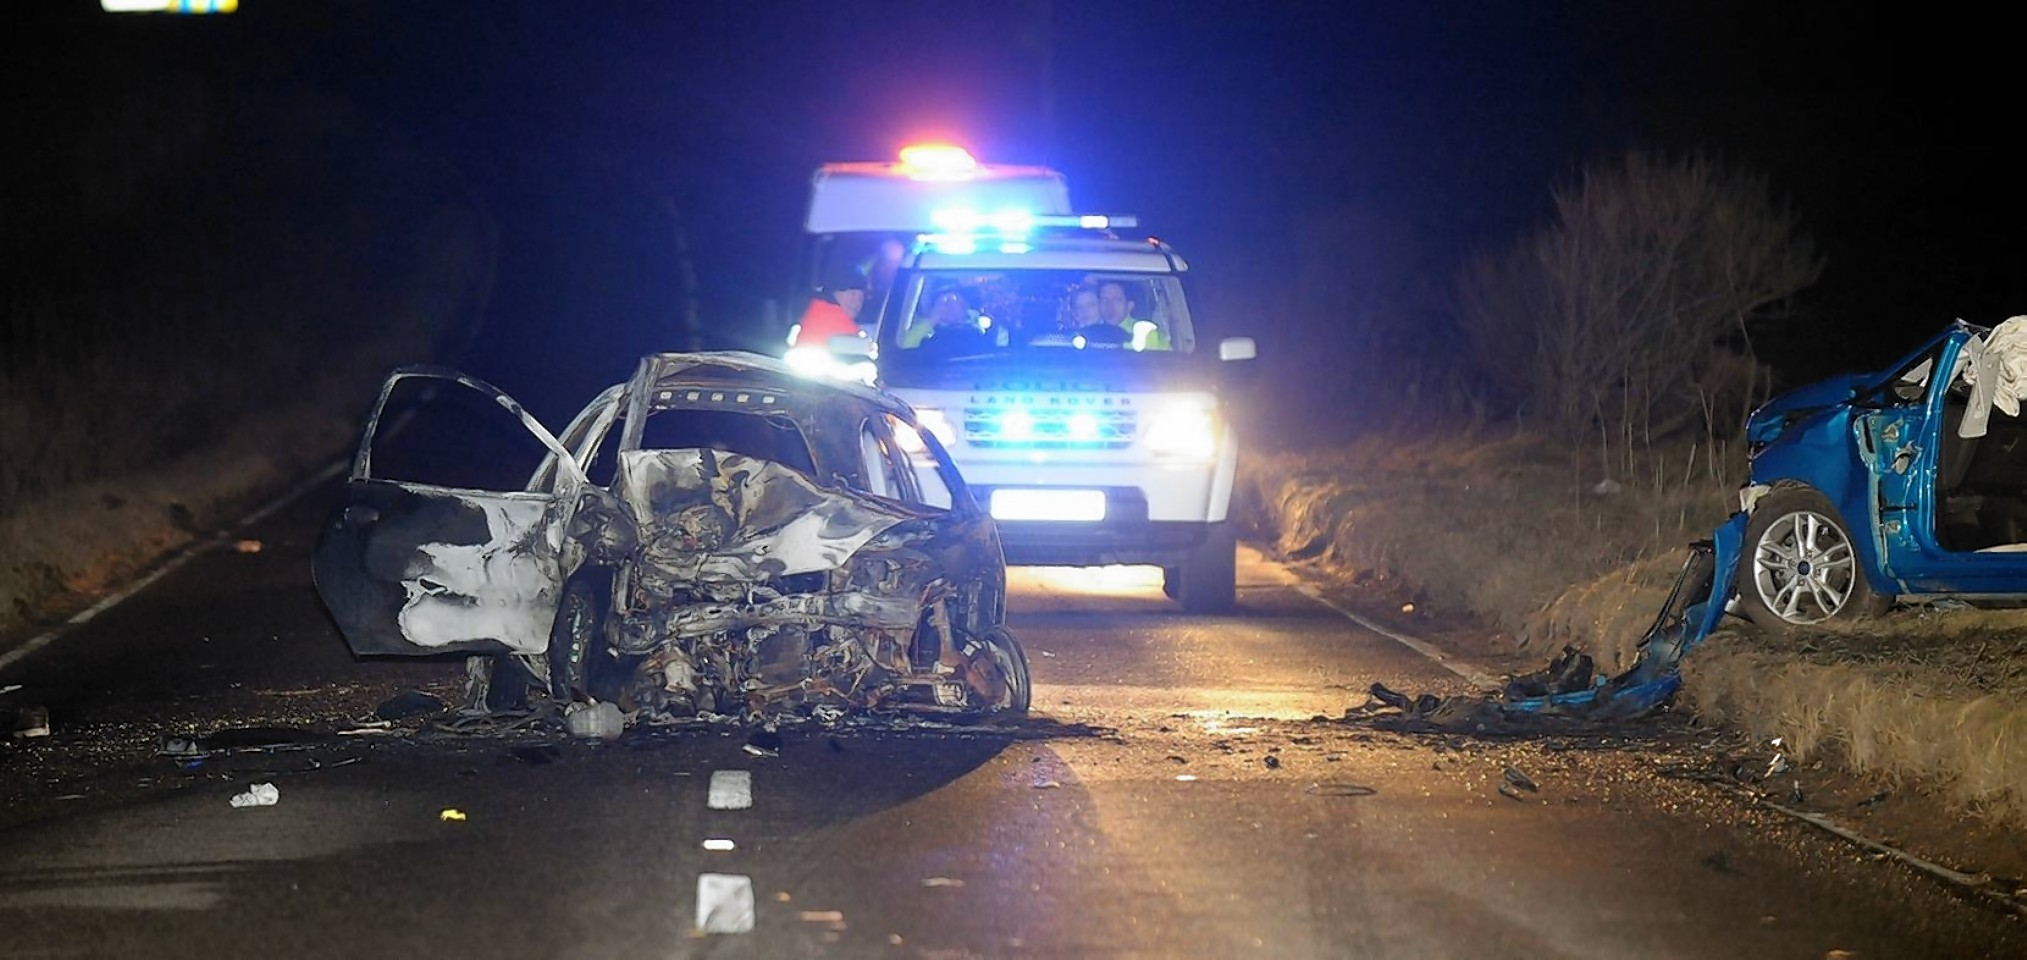 The scene of the crash on the South Deeside Road last night.  Credit: Kevin Emslie.